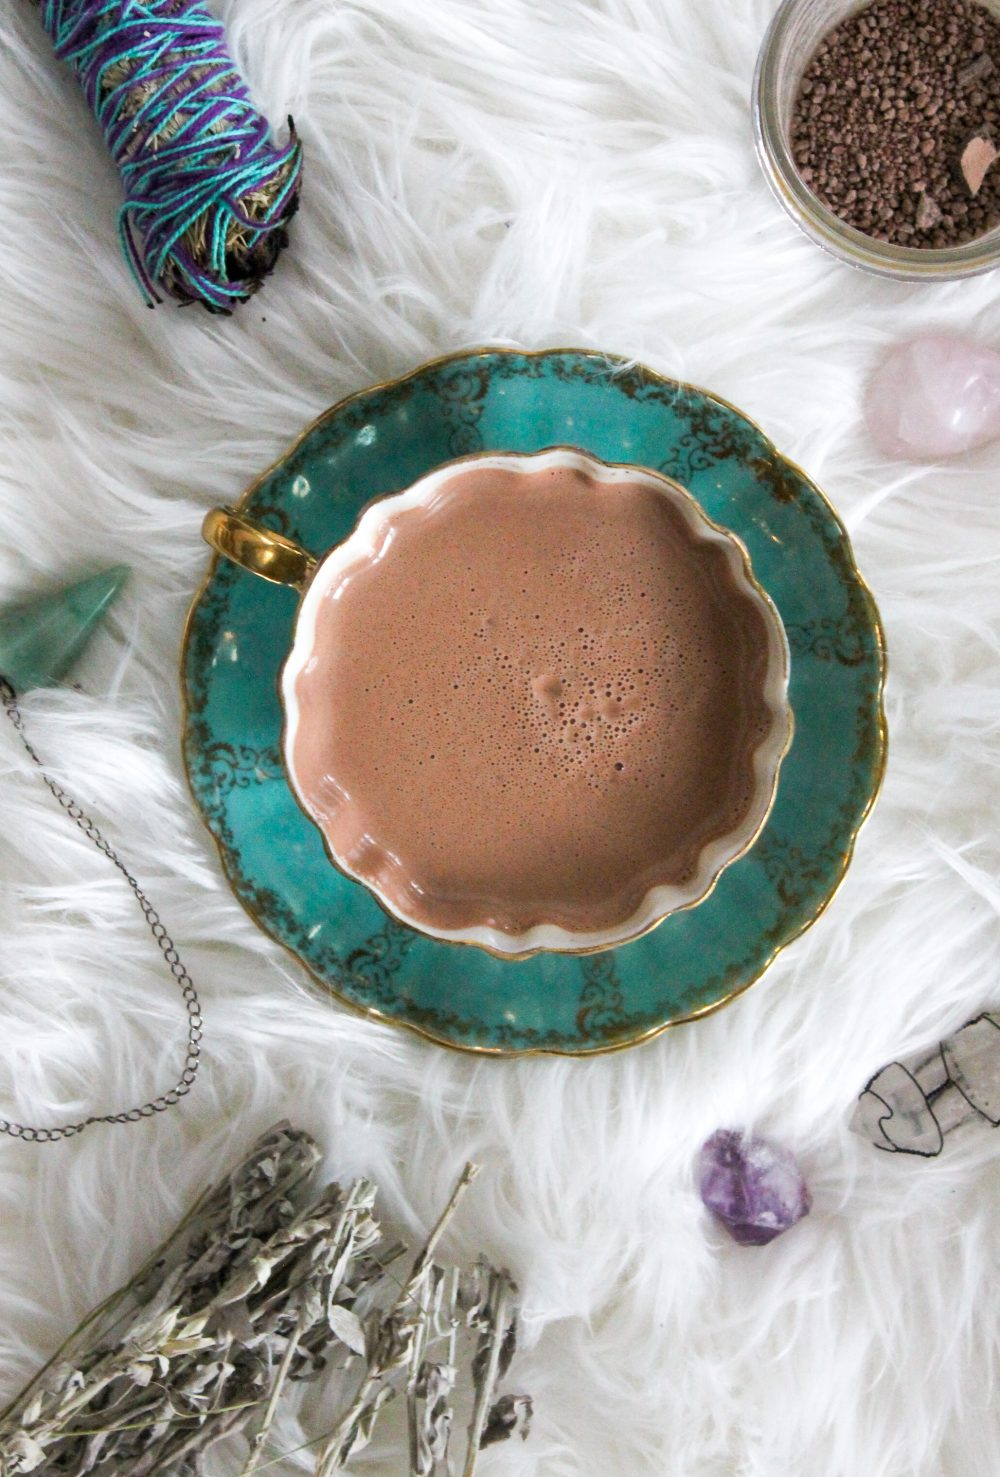 dairy free cacao ceremony with raw cacao, smudge, sage, amythest, clear quartz, rose quartz, crystals, herbs, adventurine